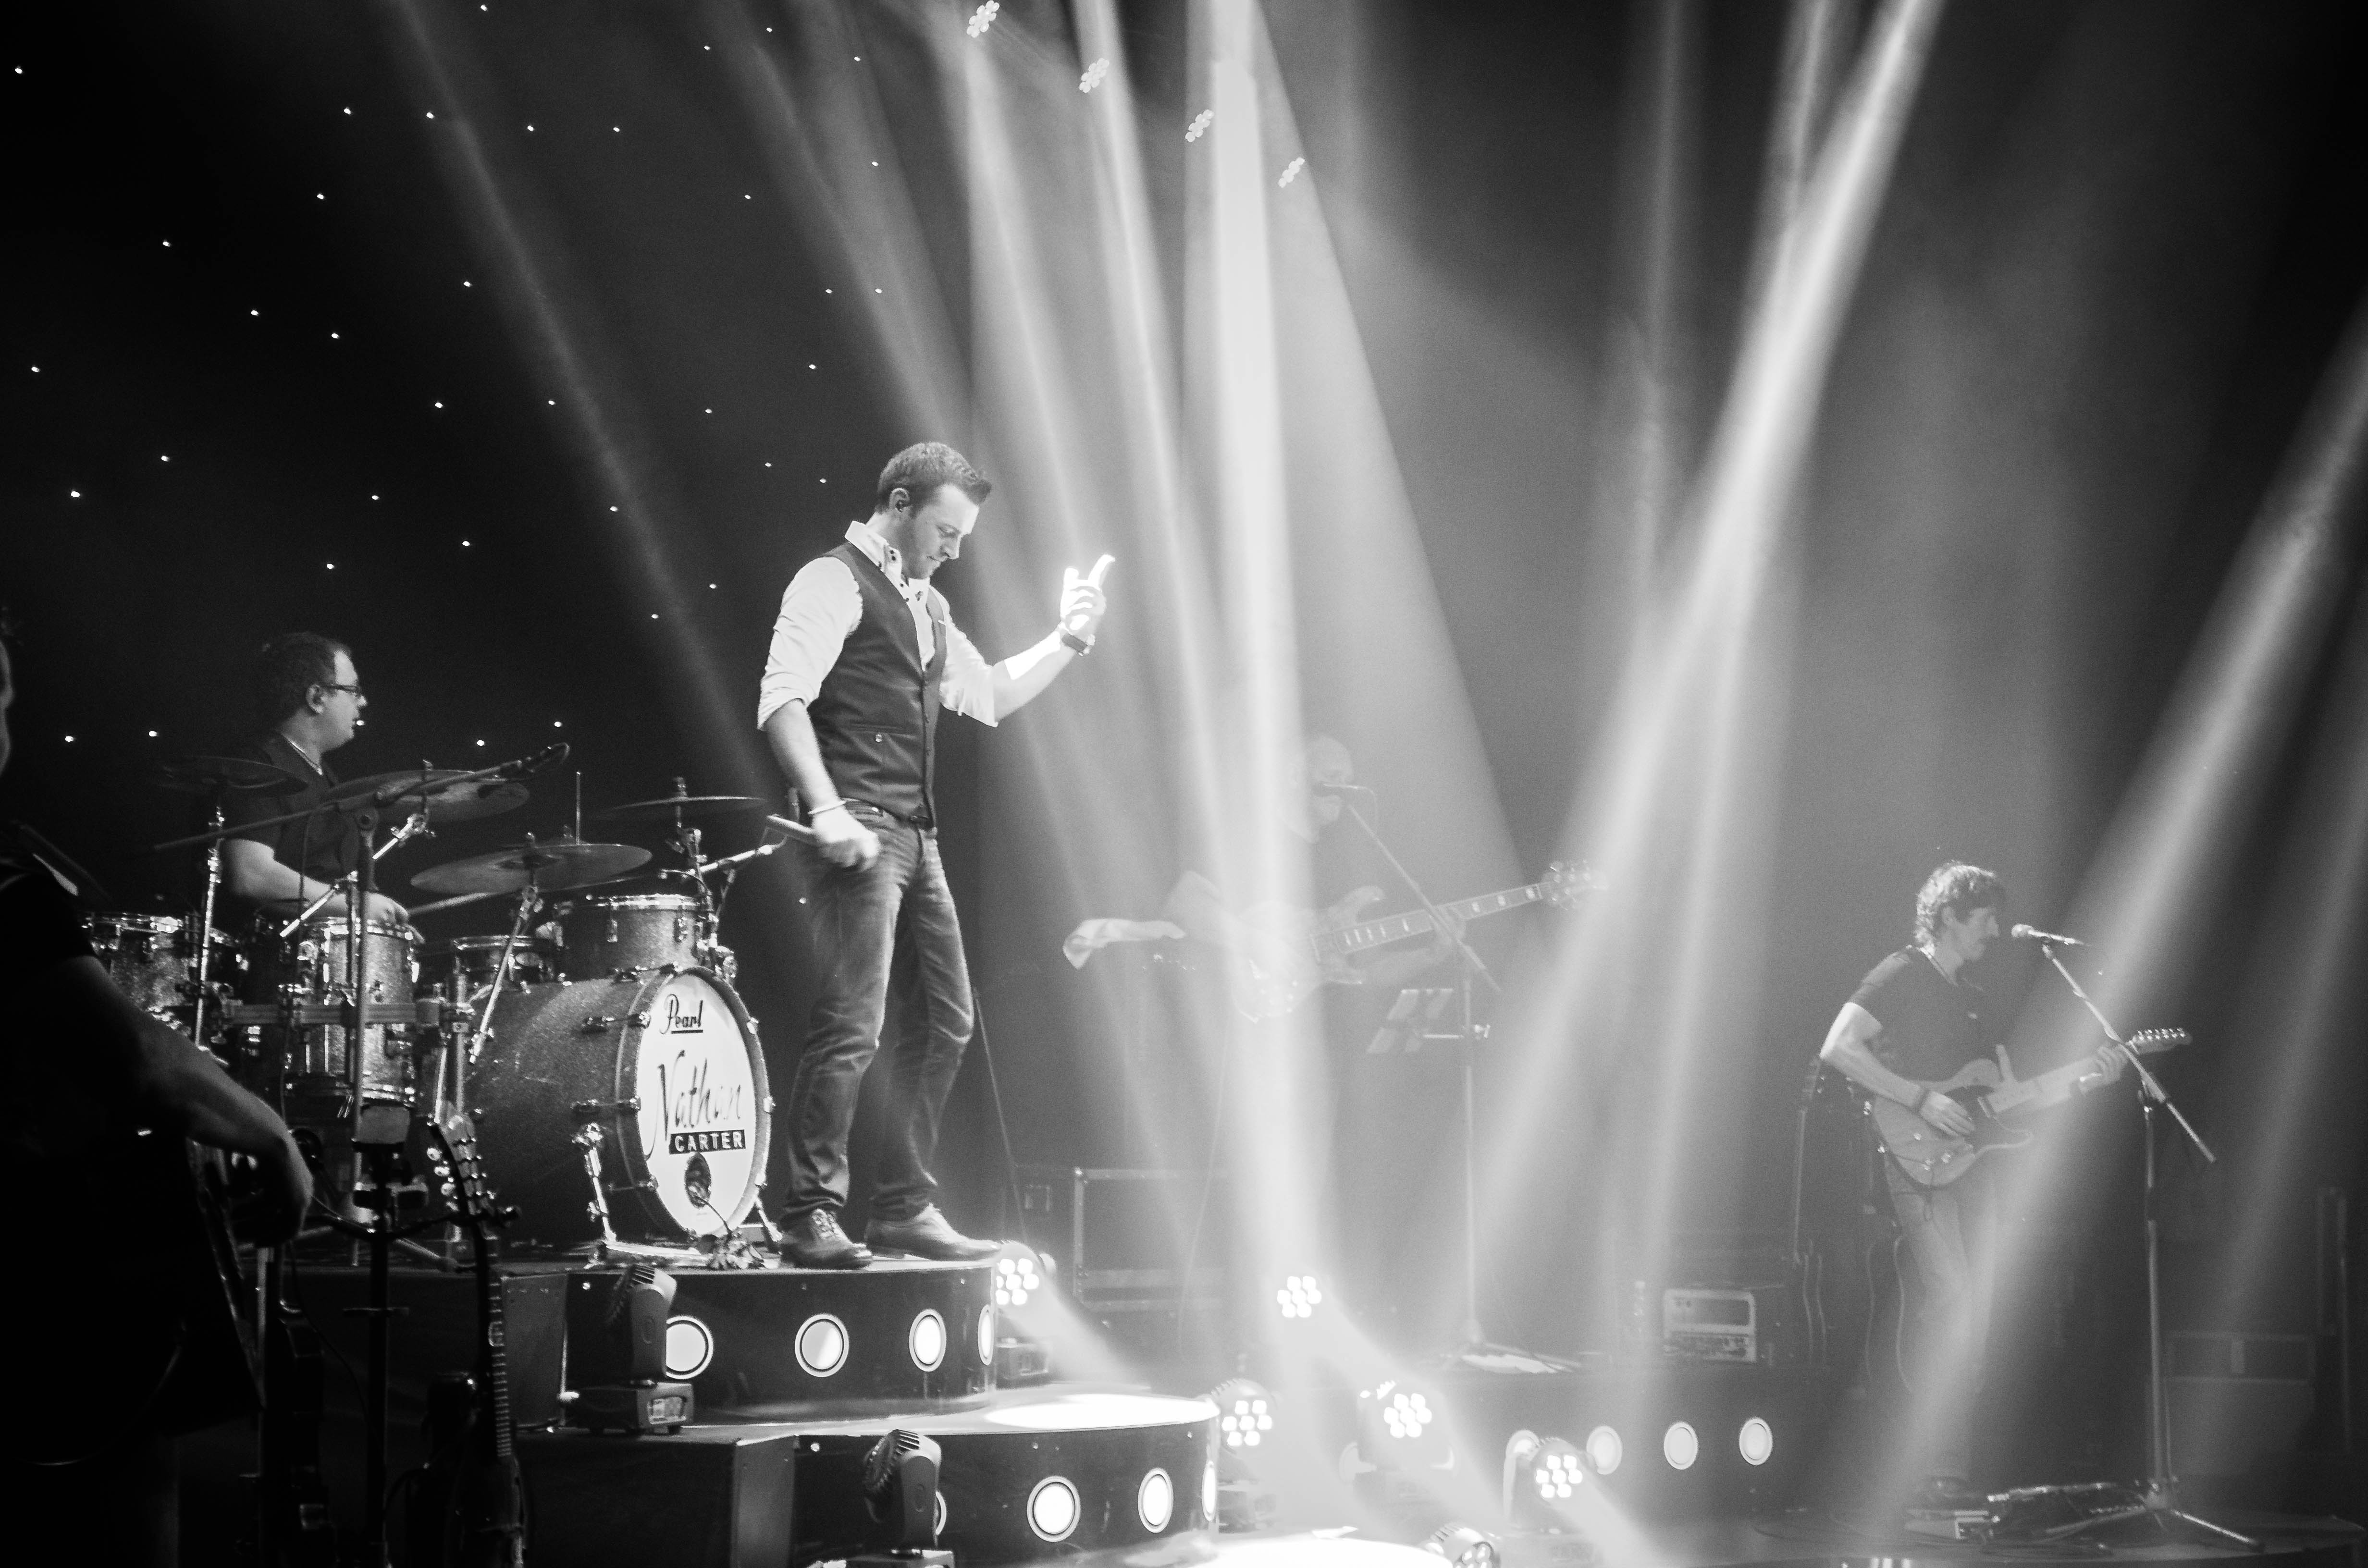 nathan-carter-at-the-marquee-cork-by-sean-smyth-15-6-14-47-of-55